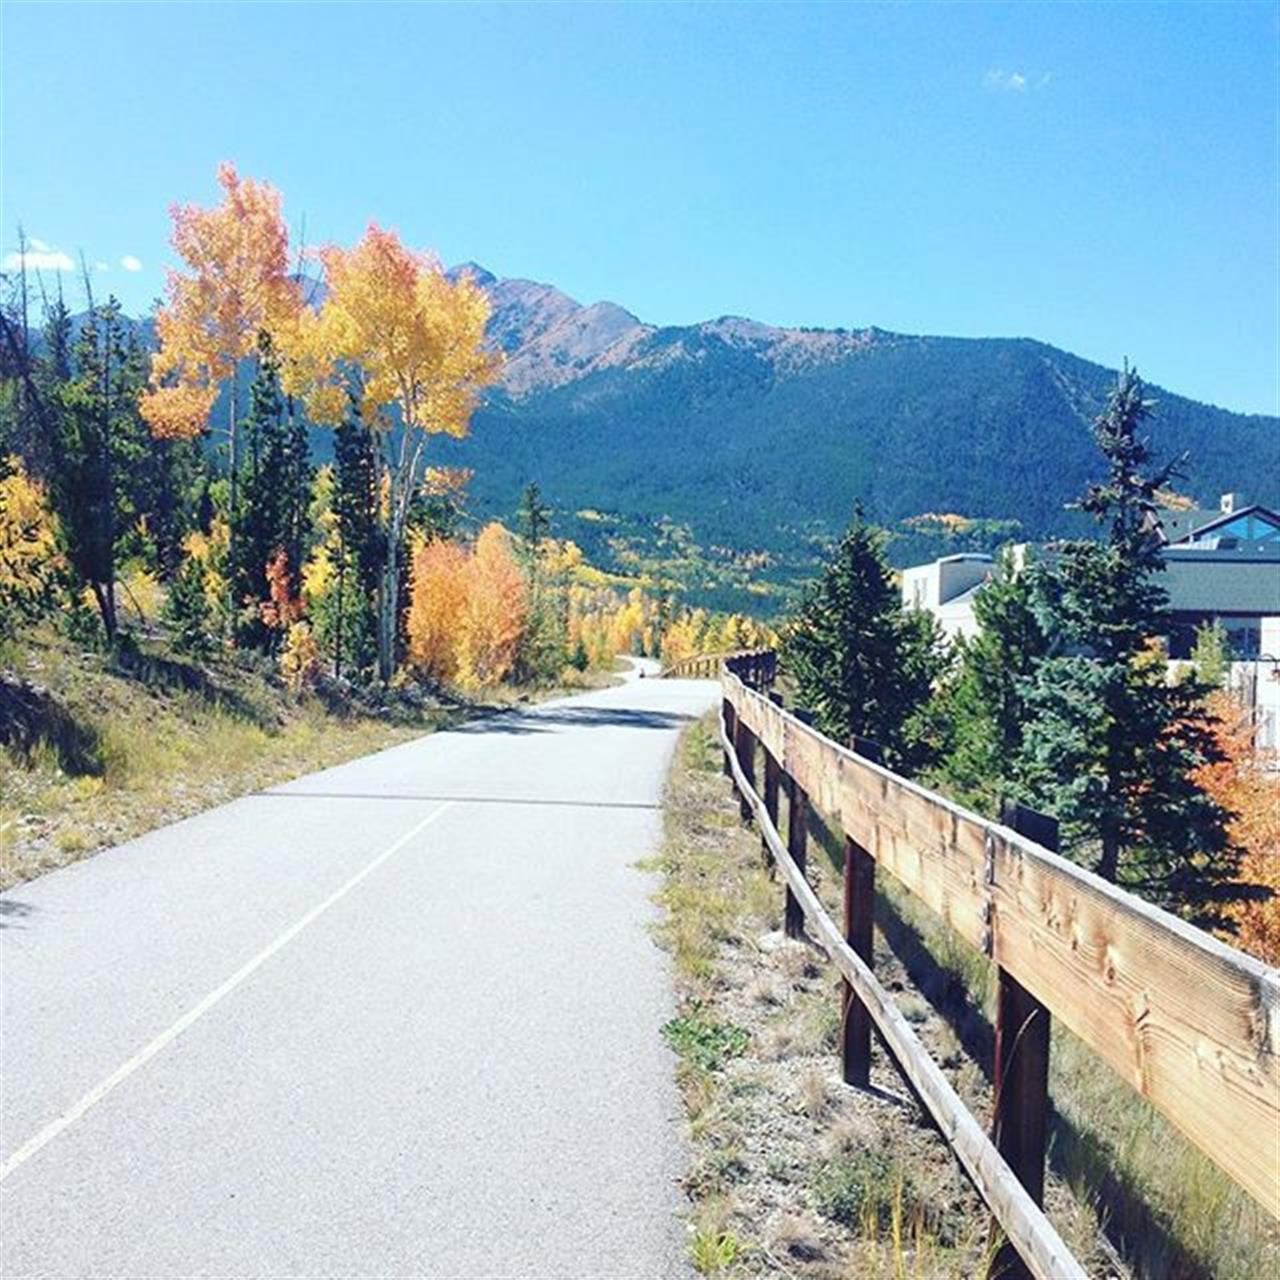 Throwback to last September. Who else is excited for crisp bike rides and brilliant aspens? #slifersummit #peepingleaves #leadingrelocal